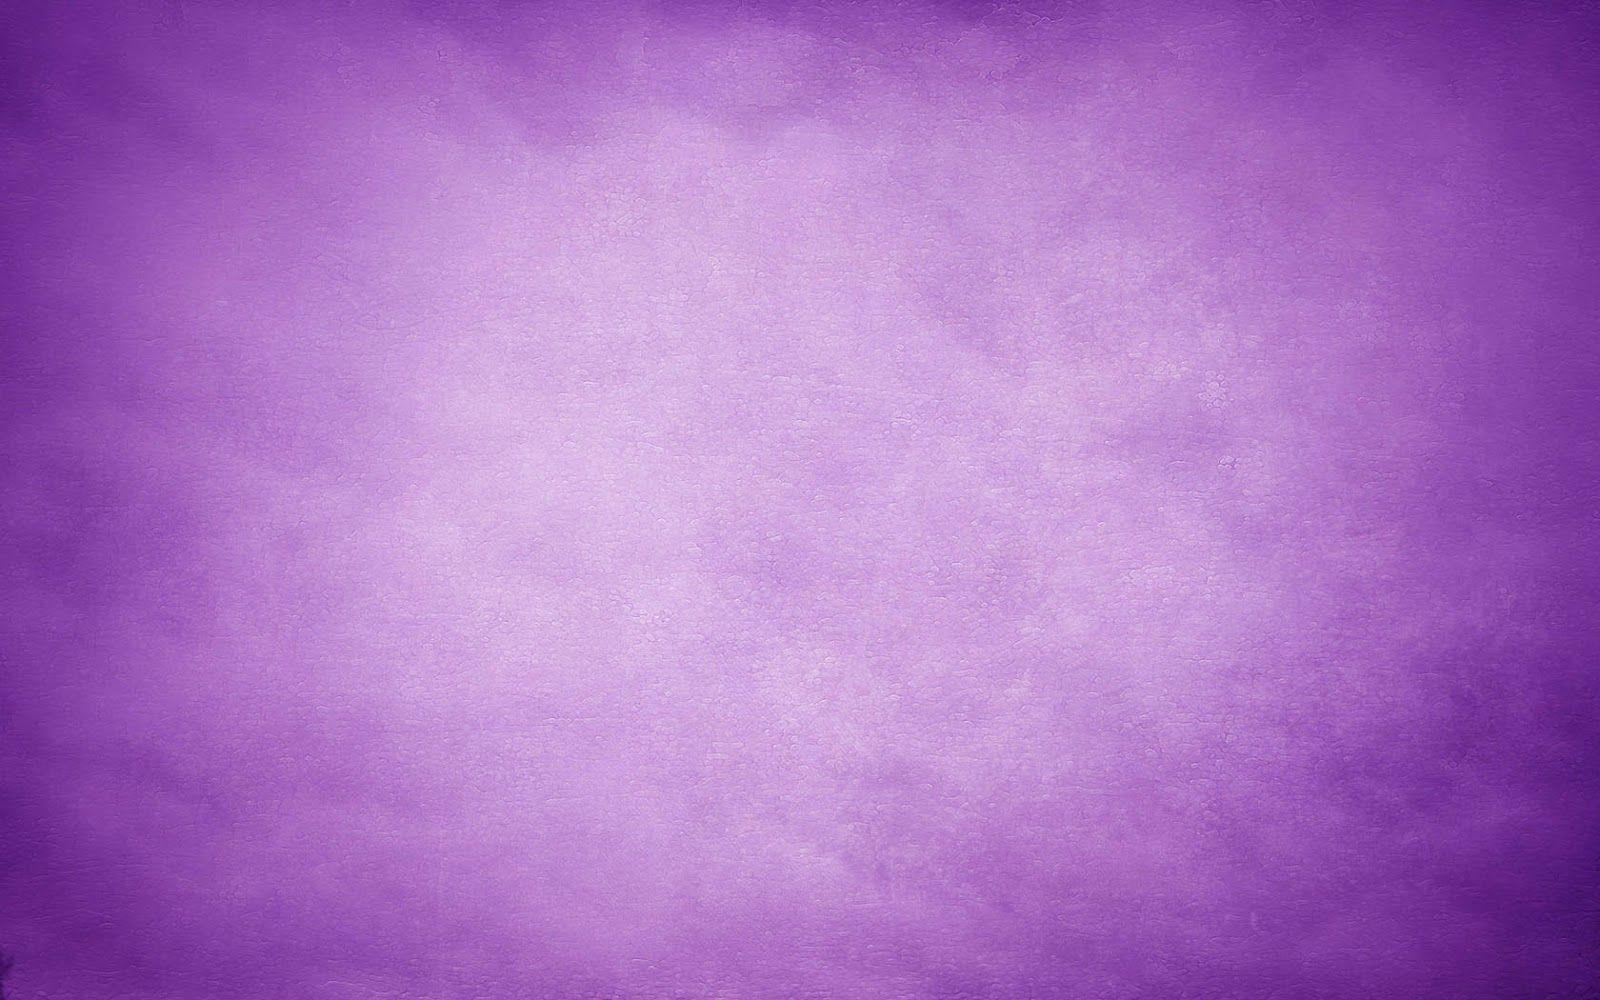 lavender color wallpaper hd - photo #38